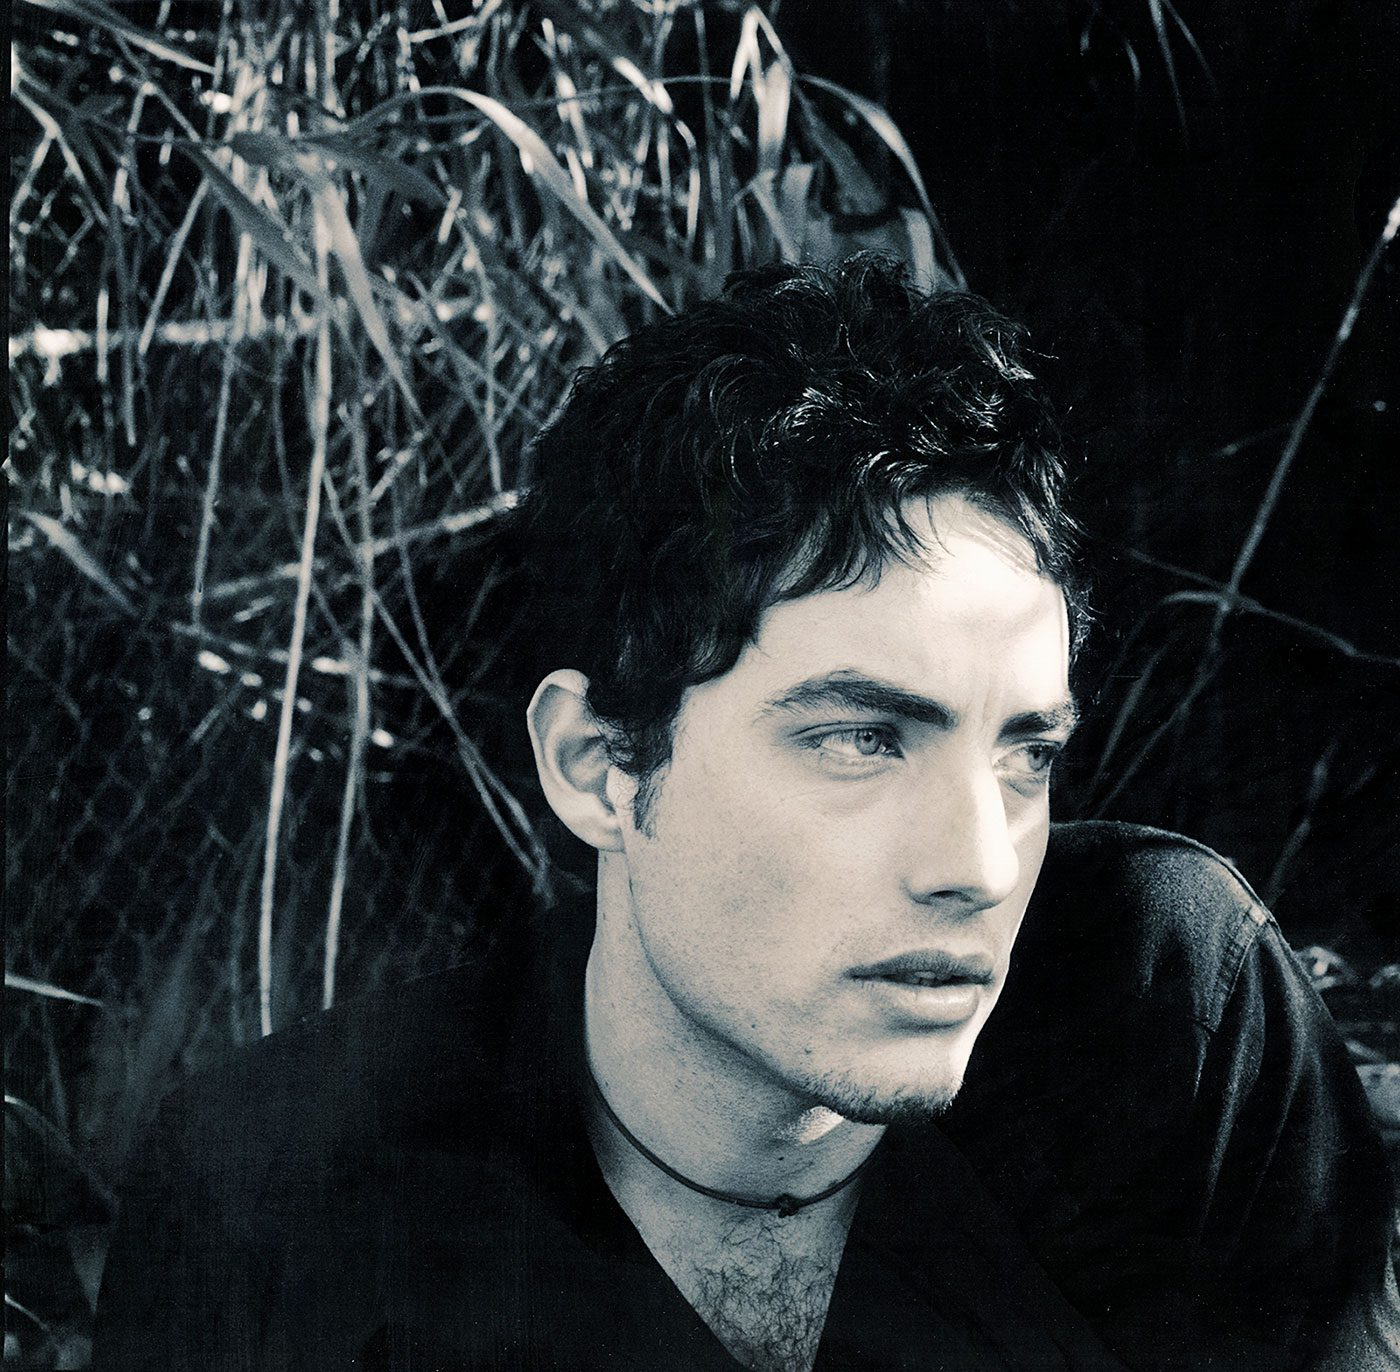 Jacob Dylan / Wallflowers